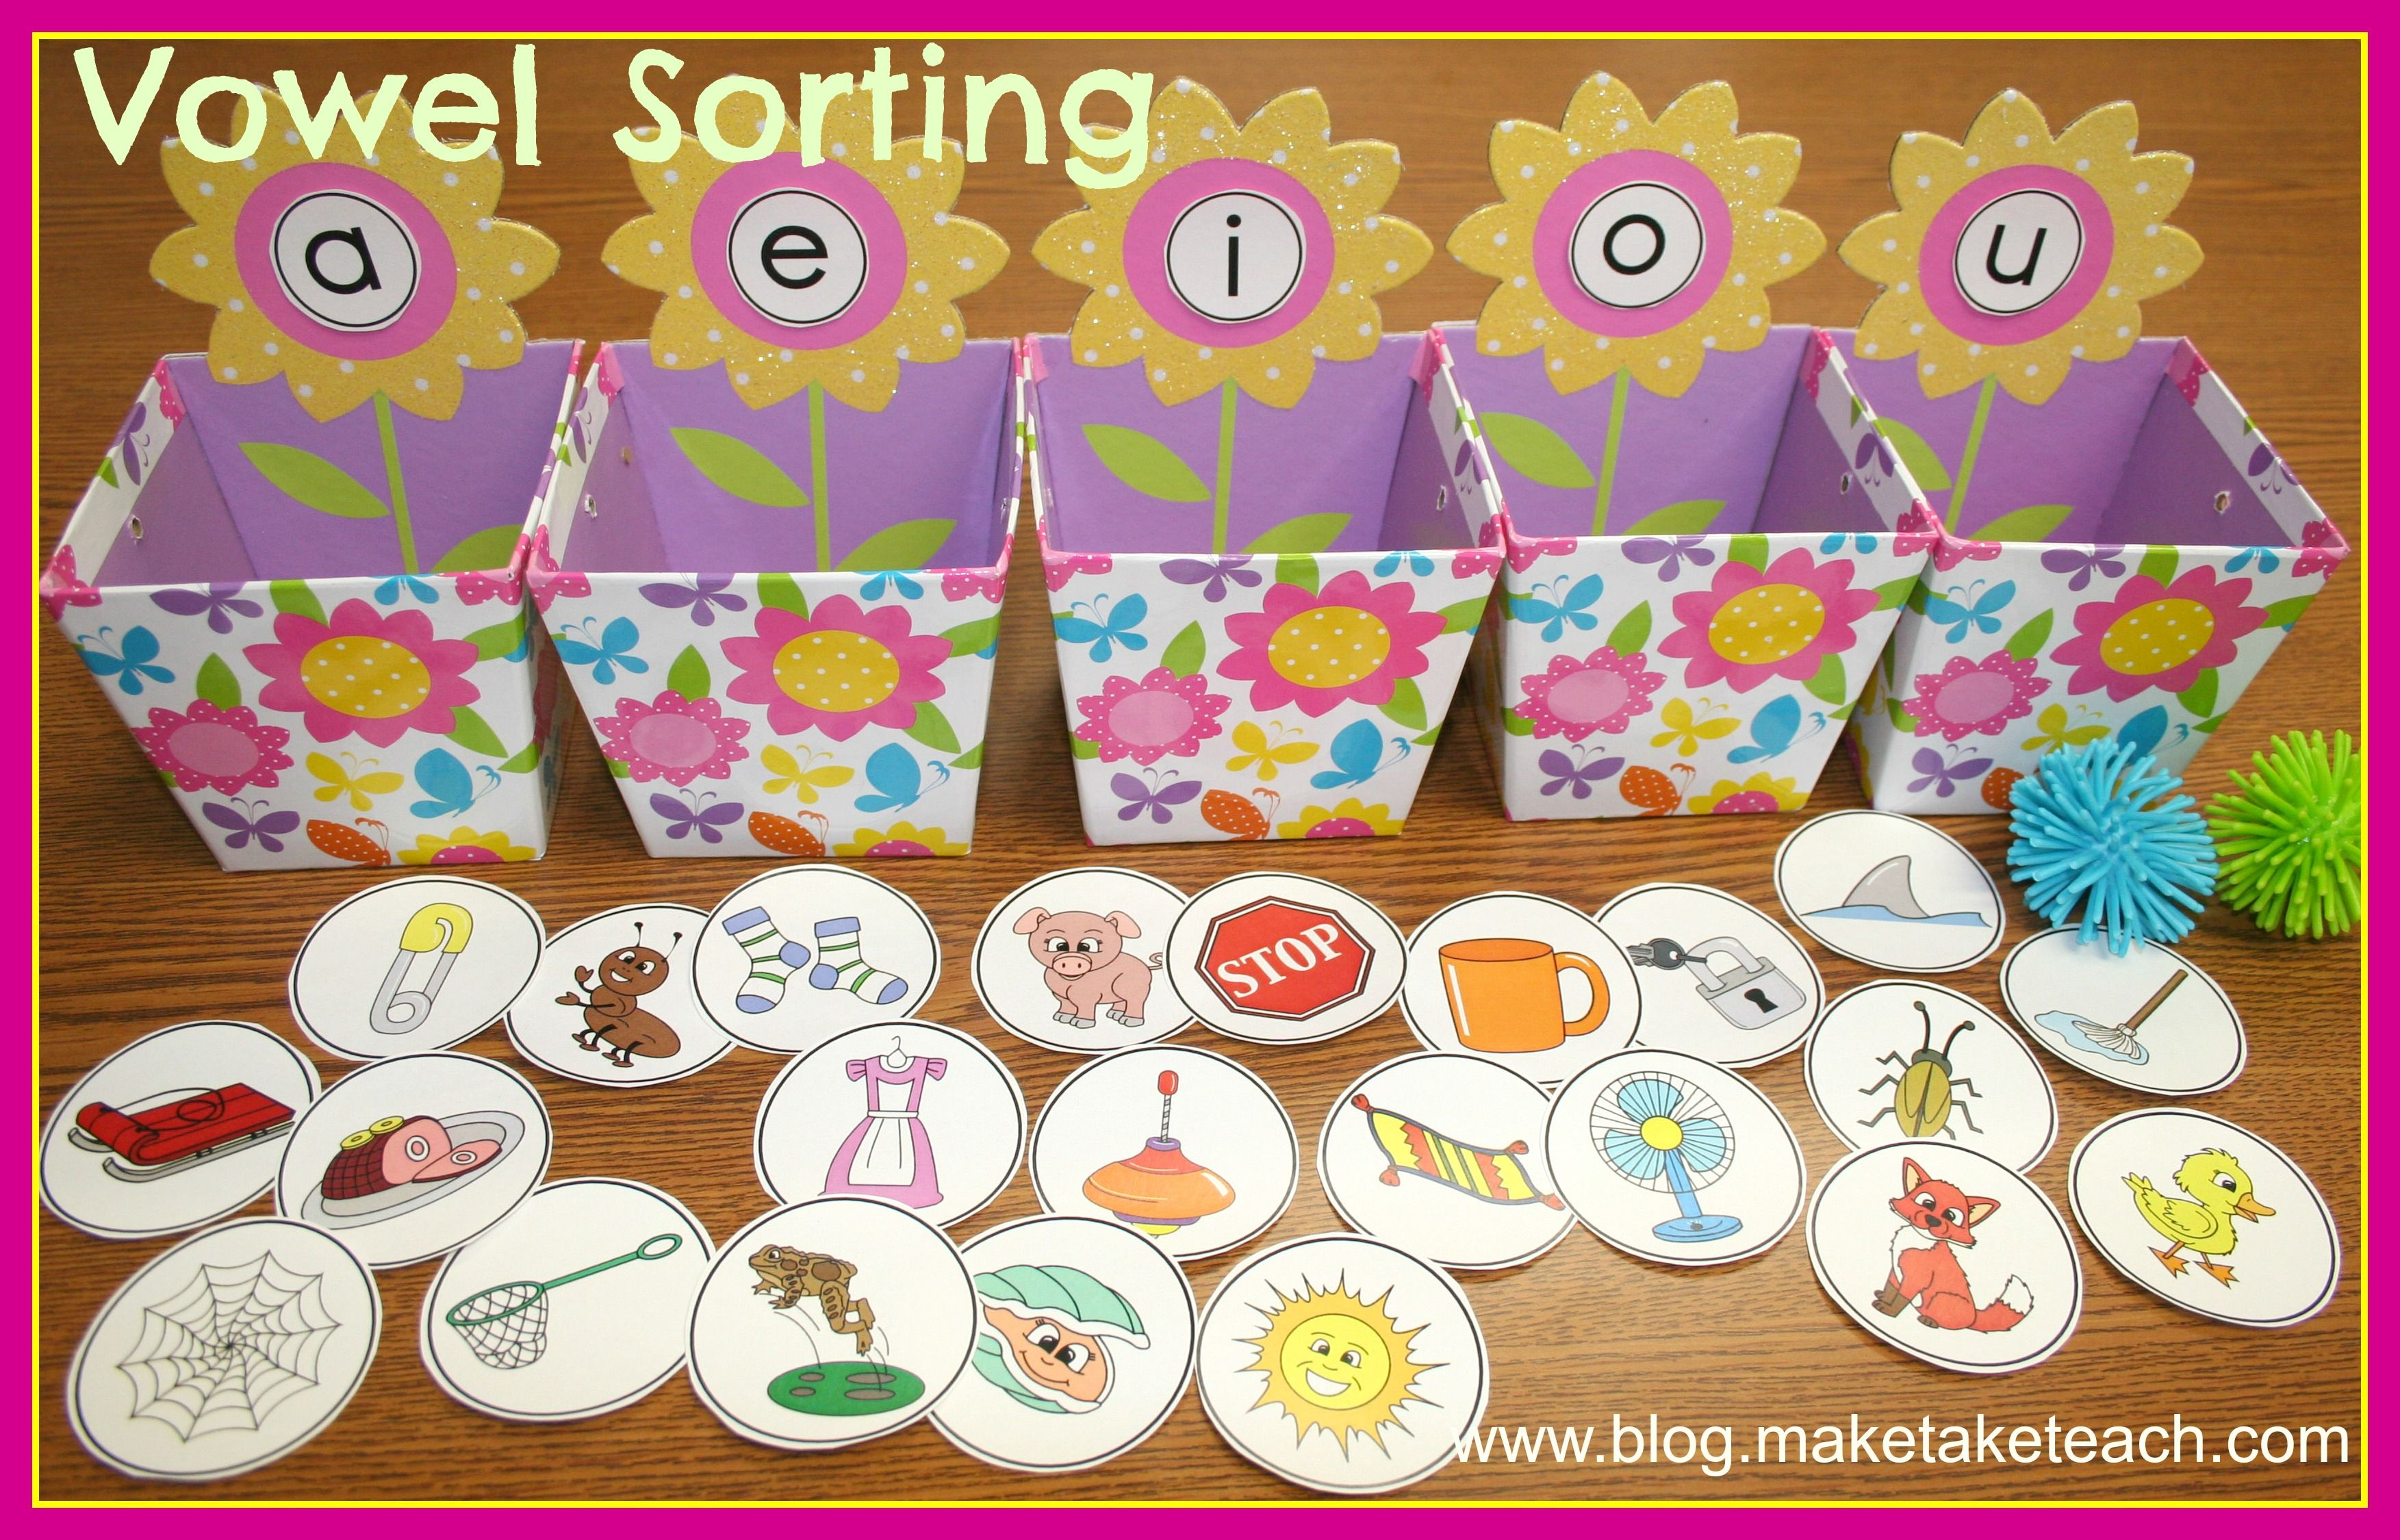 Vowel Sorting Could Also Make One For First Letter Recognition